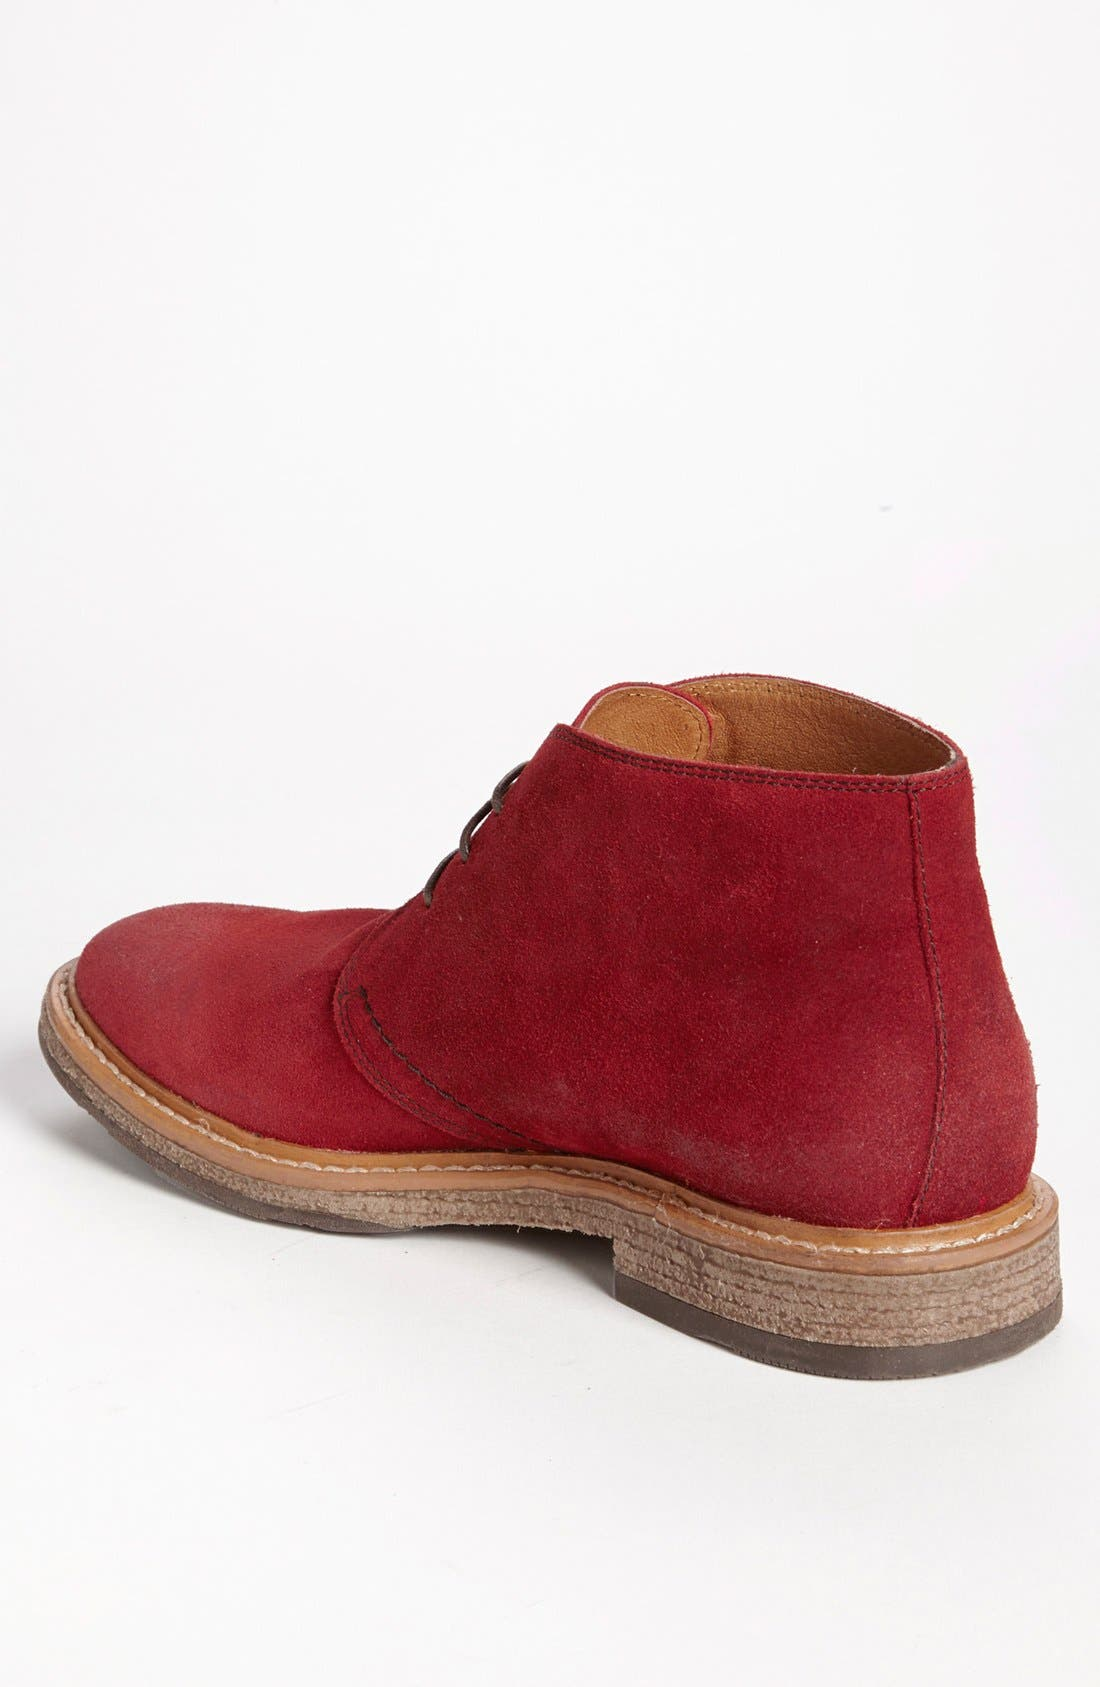 'Canyon' Chukka Boot,                             Alternate thumbnail 24, color,